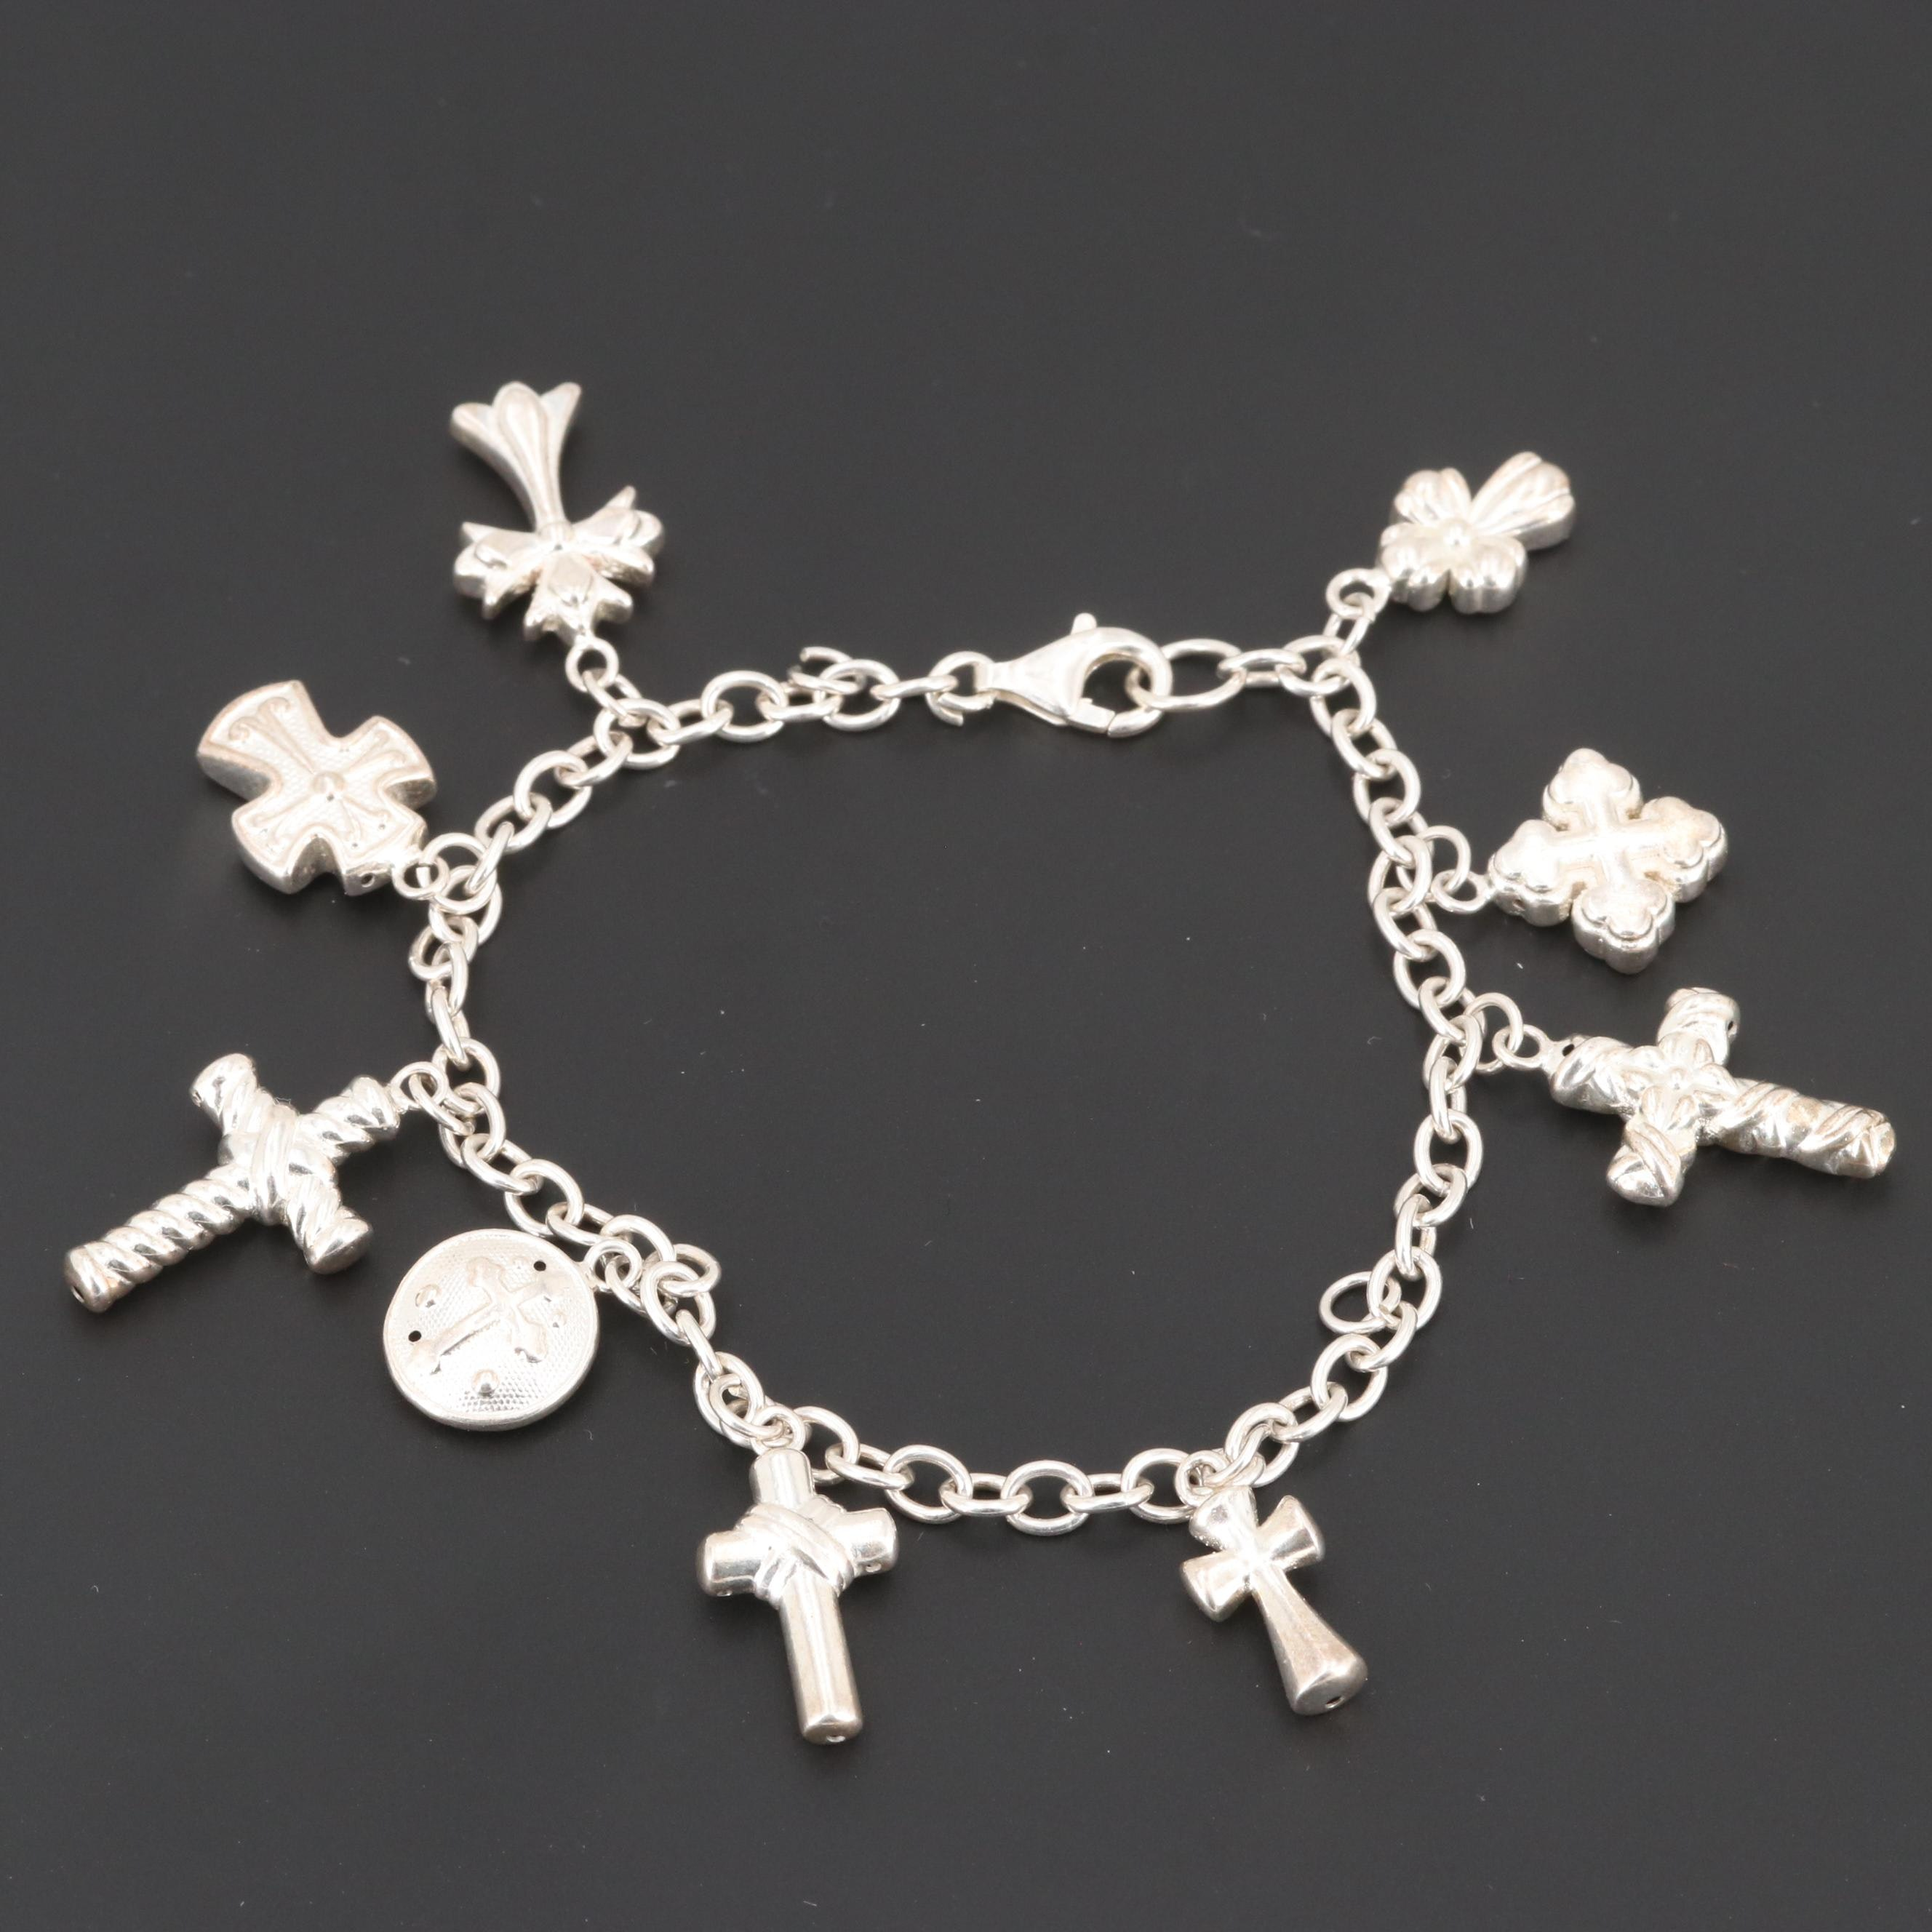 Sterling Silver Bracelet with Silver Tone Cross Charms